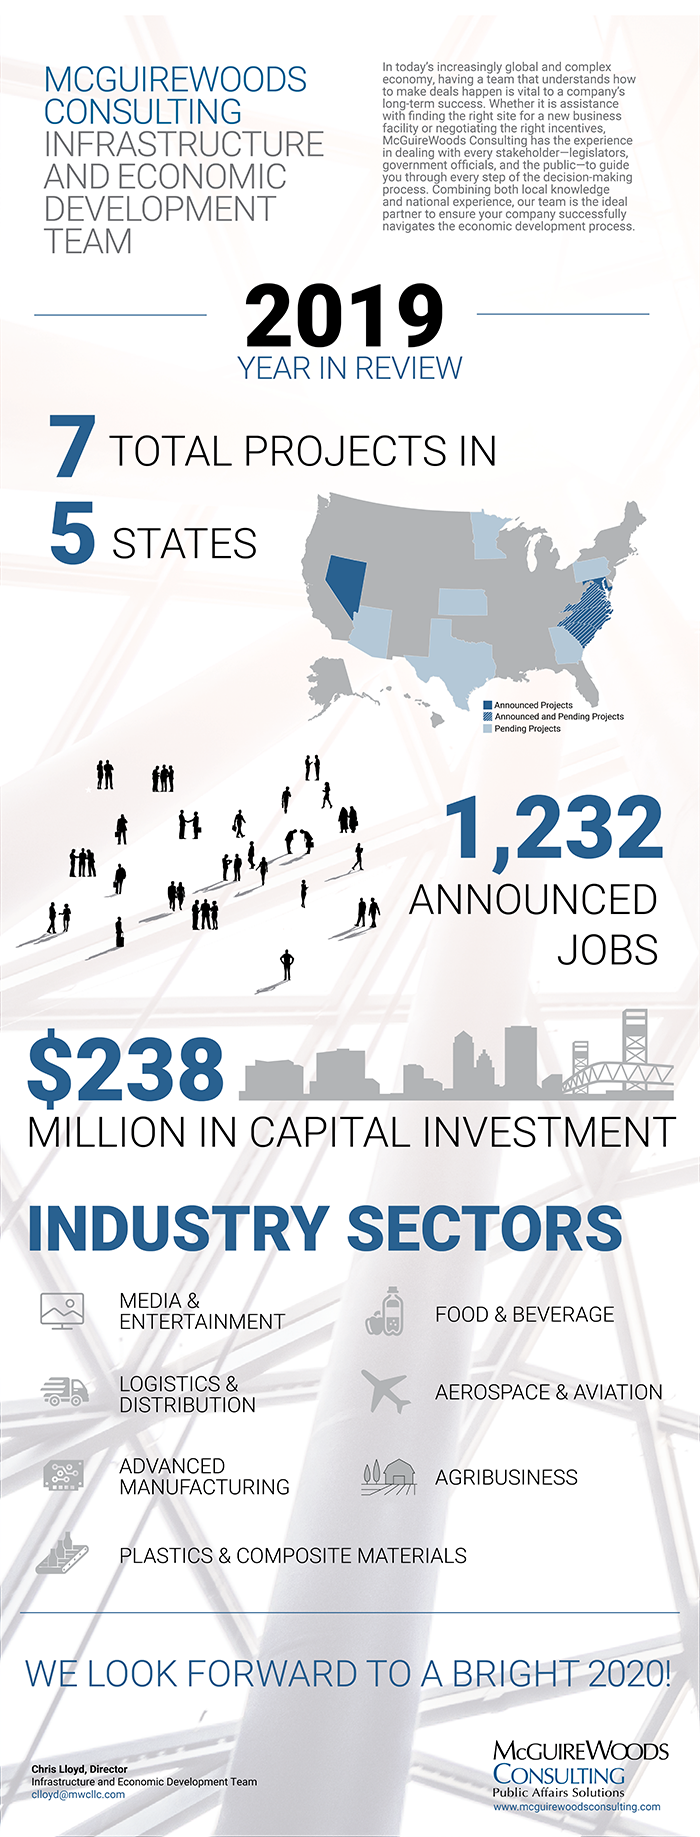 infrastructure and economic development year in review